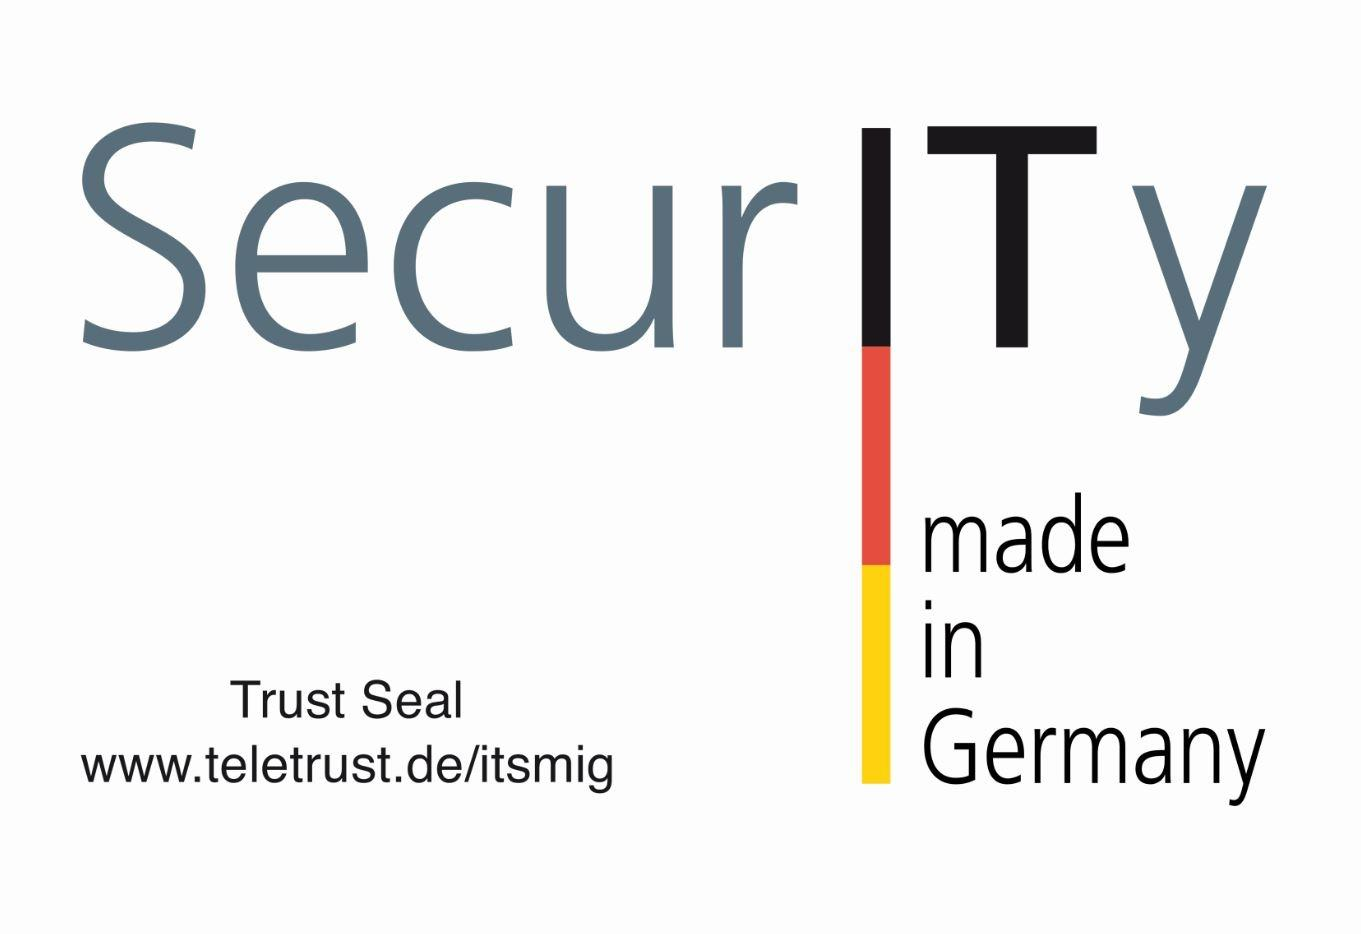 IT-Security-made-in-Germany.JPG